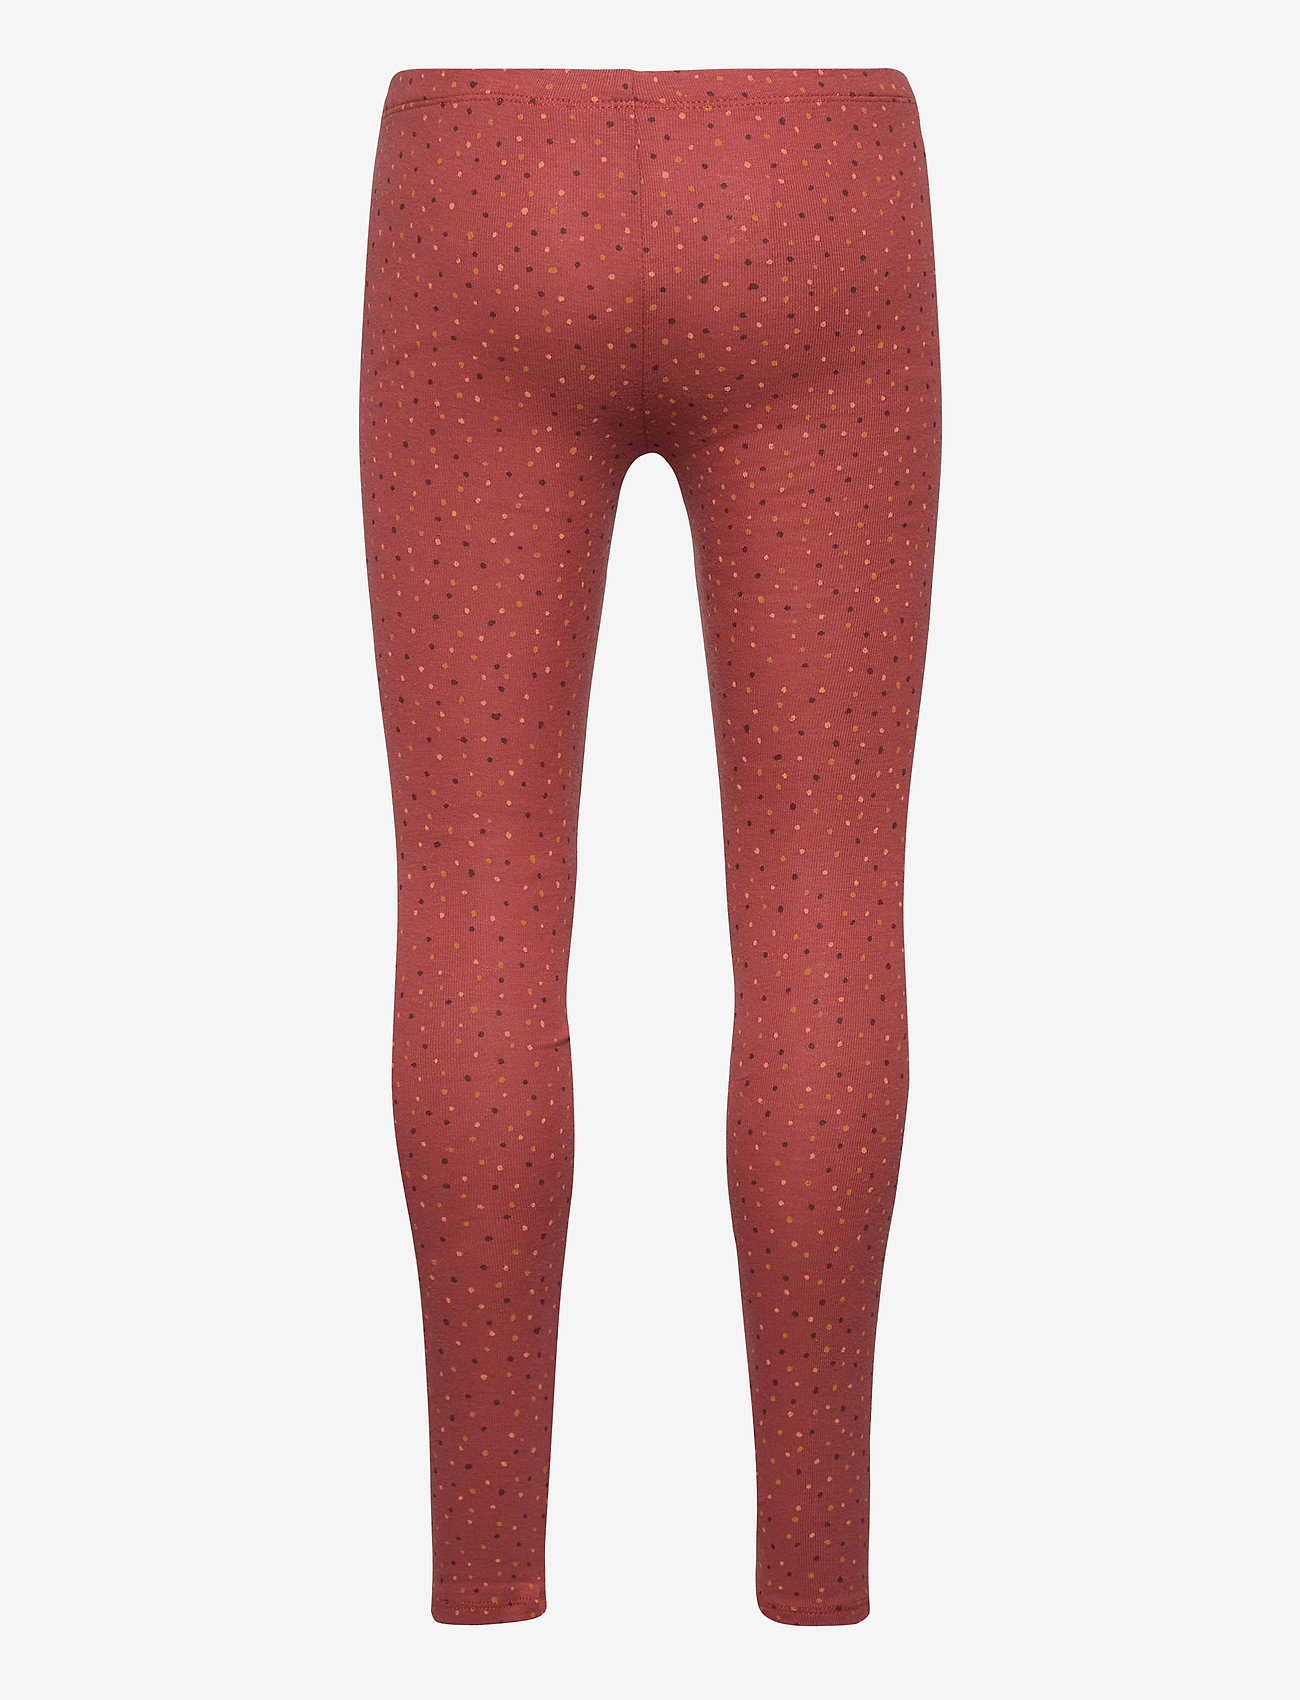 Paula Leggings (Barn Red Aop Trio Dotties) (23.96 €) - Soft Gallery ieZ8h